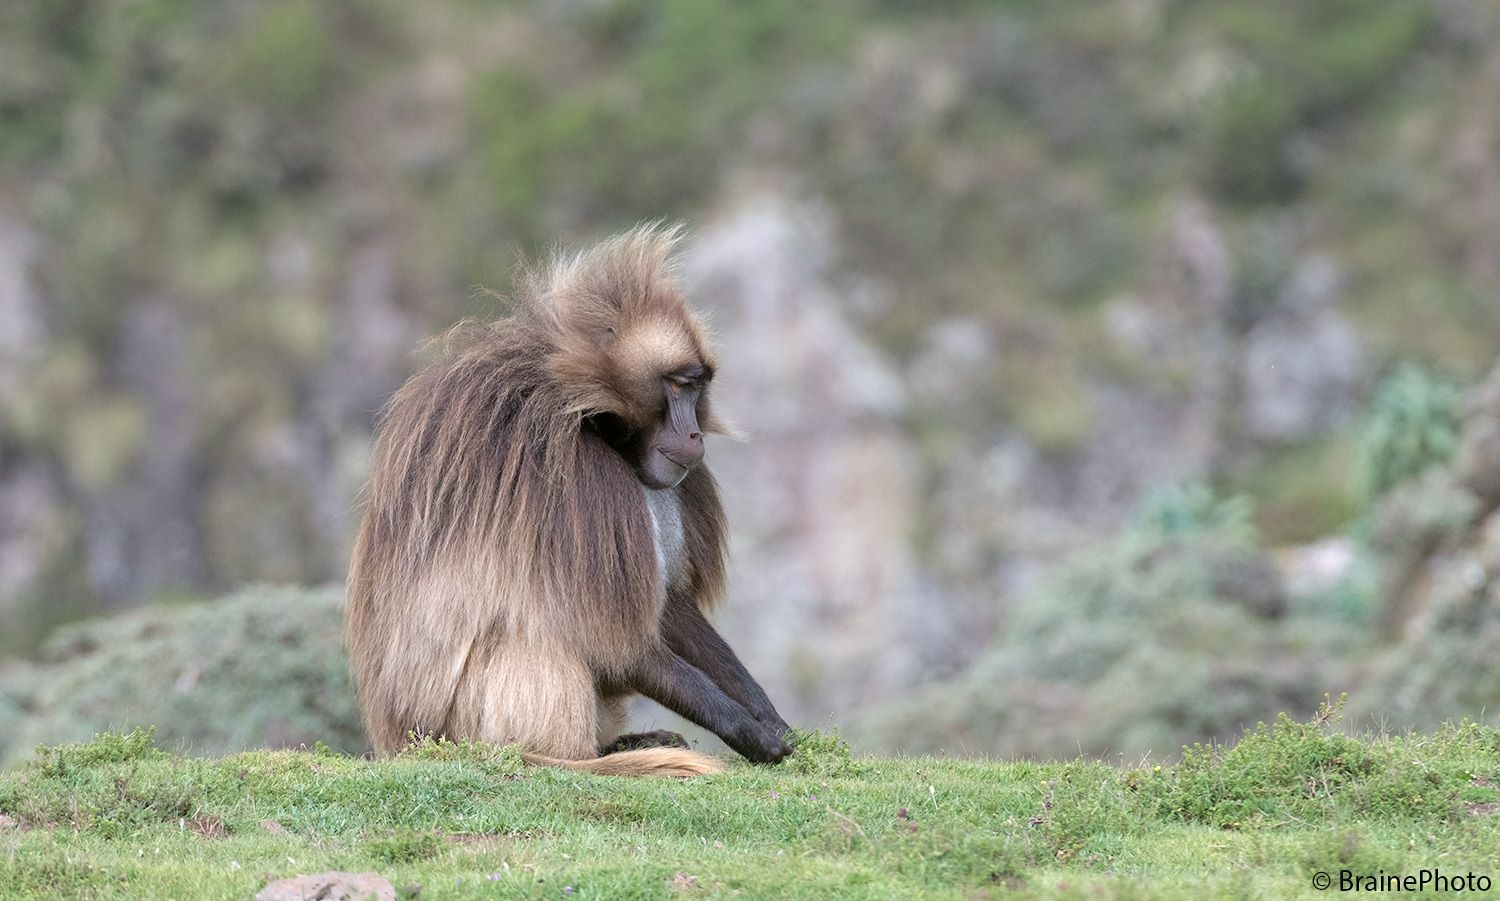 Our Ethiopian birding and photography tours offer an unforgettable experience and a great opportunity to view Ethiopia's magical wildlife, such as this Gelada or Bleeding Heart Monkey